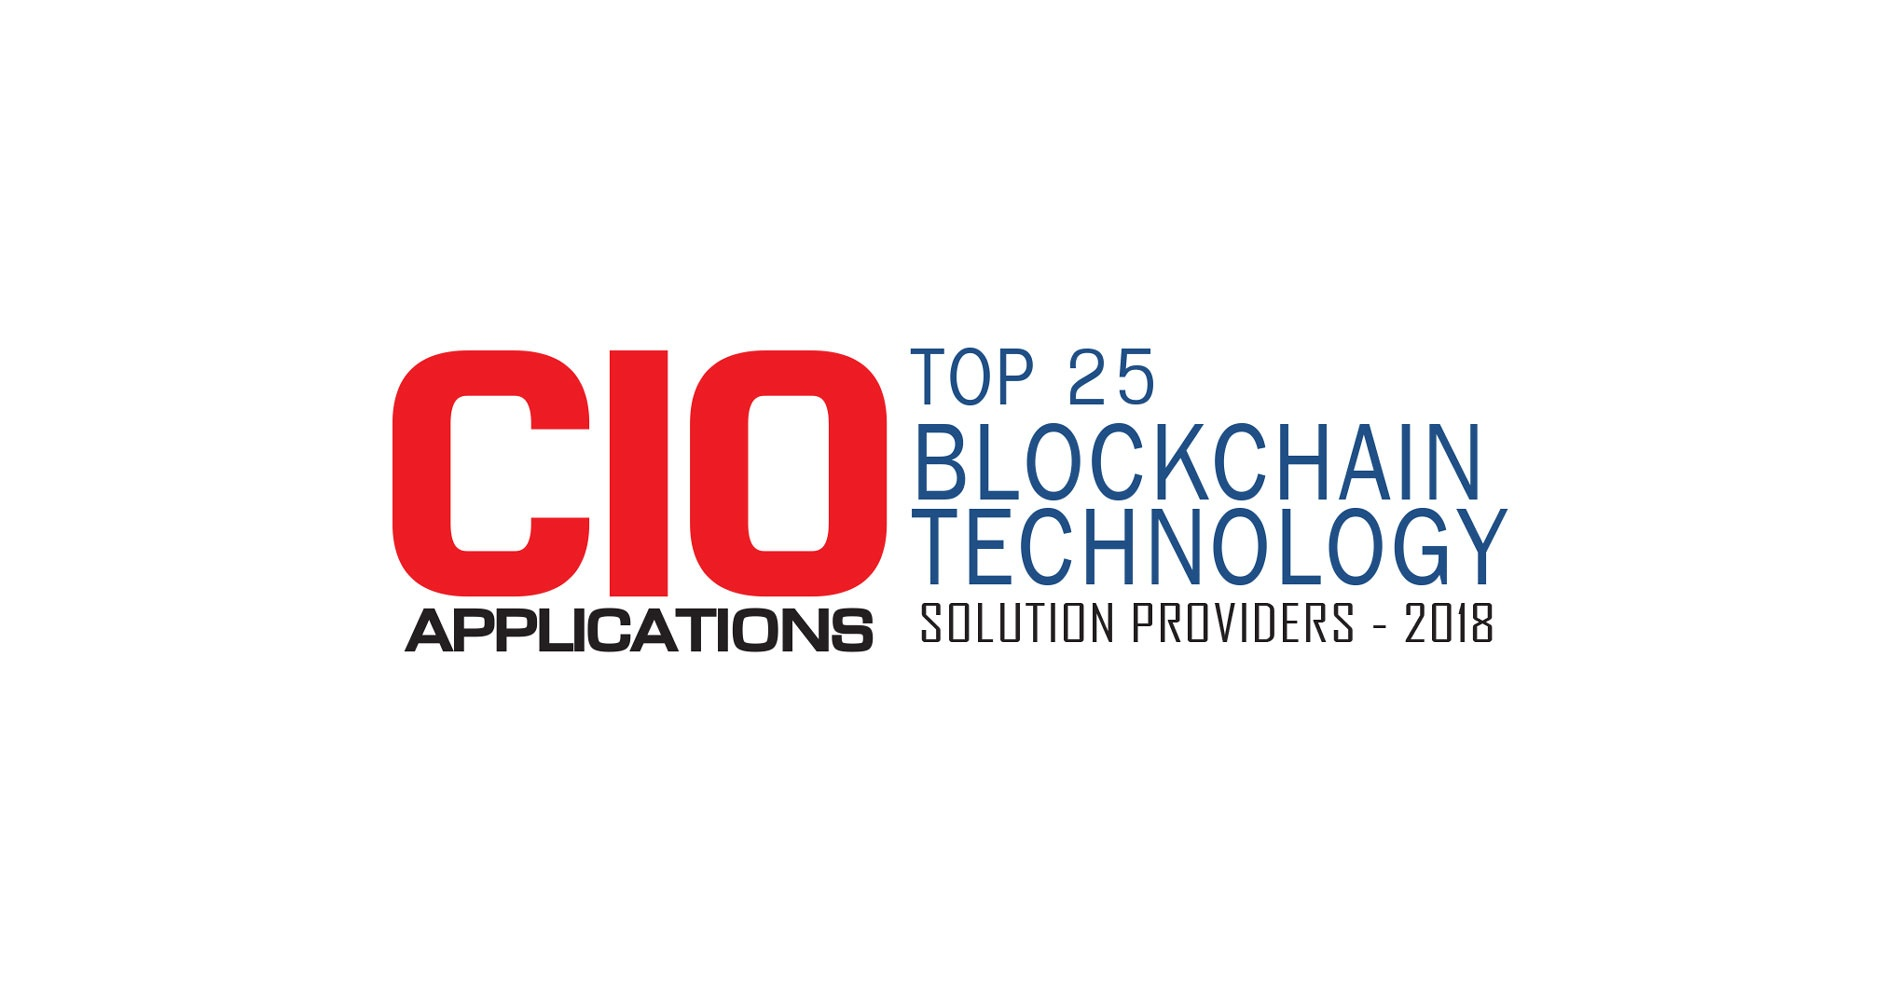 Top-Blockchain-Technology-Solutions-Provider1